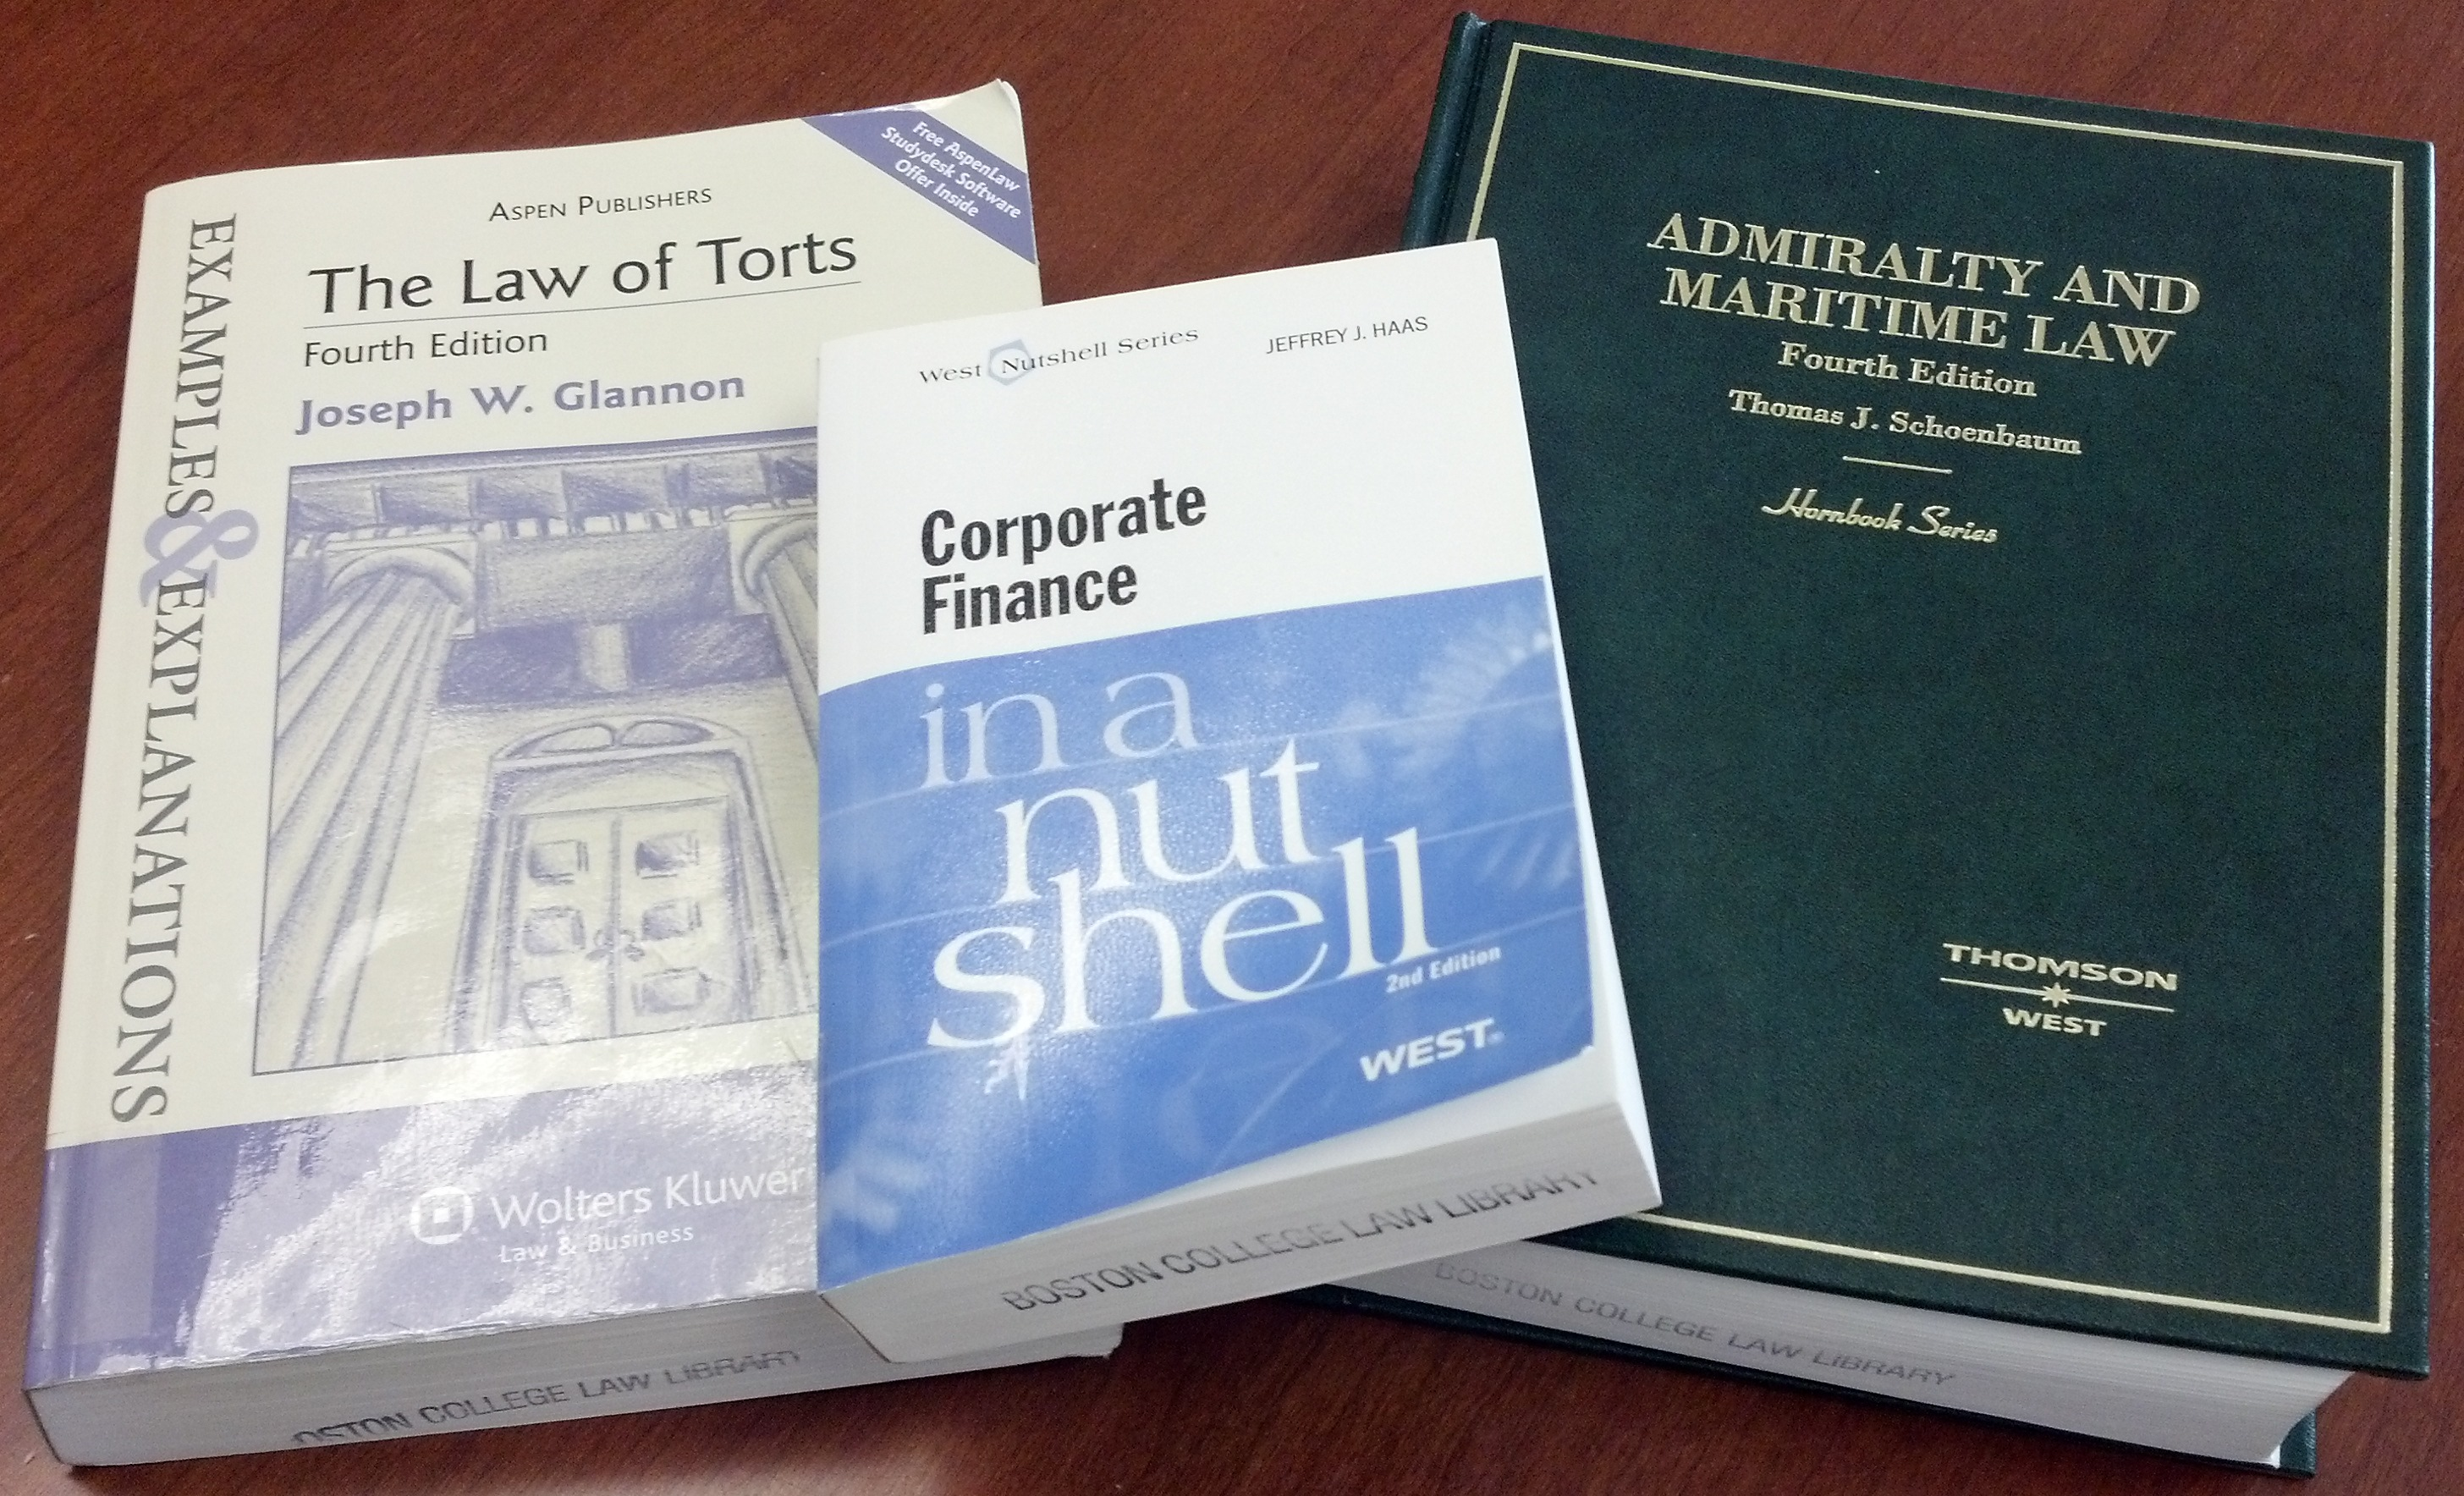 Photograph of Examples and Explanations The Law of Torts, Corporate Finance in a Nutshell, and Admiralty and Maritime treatise